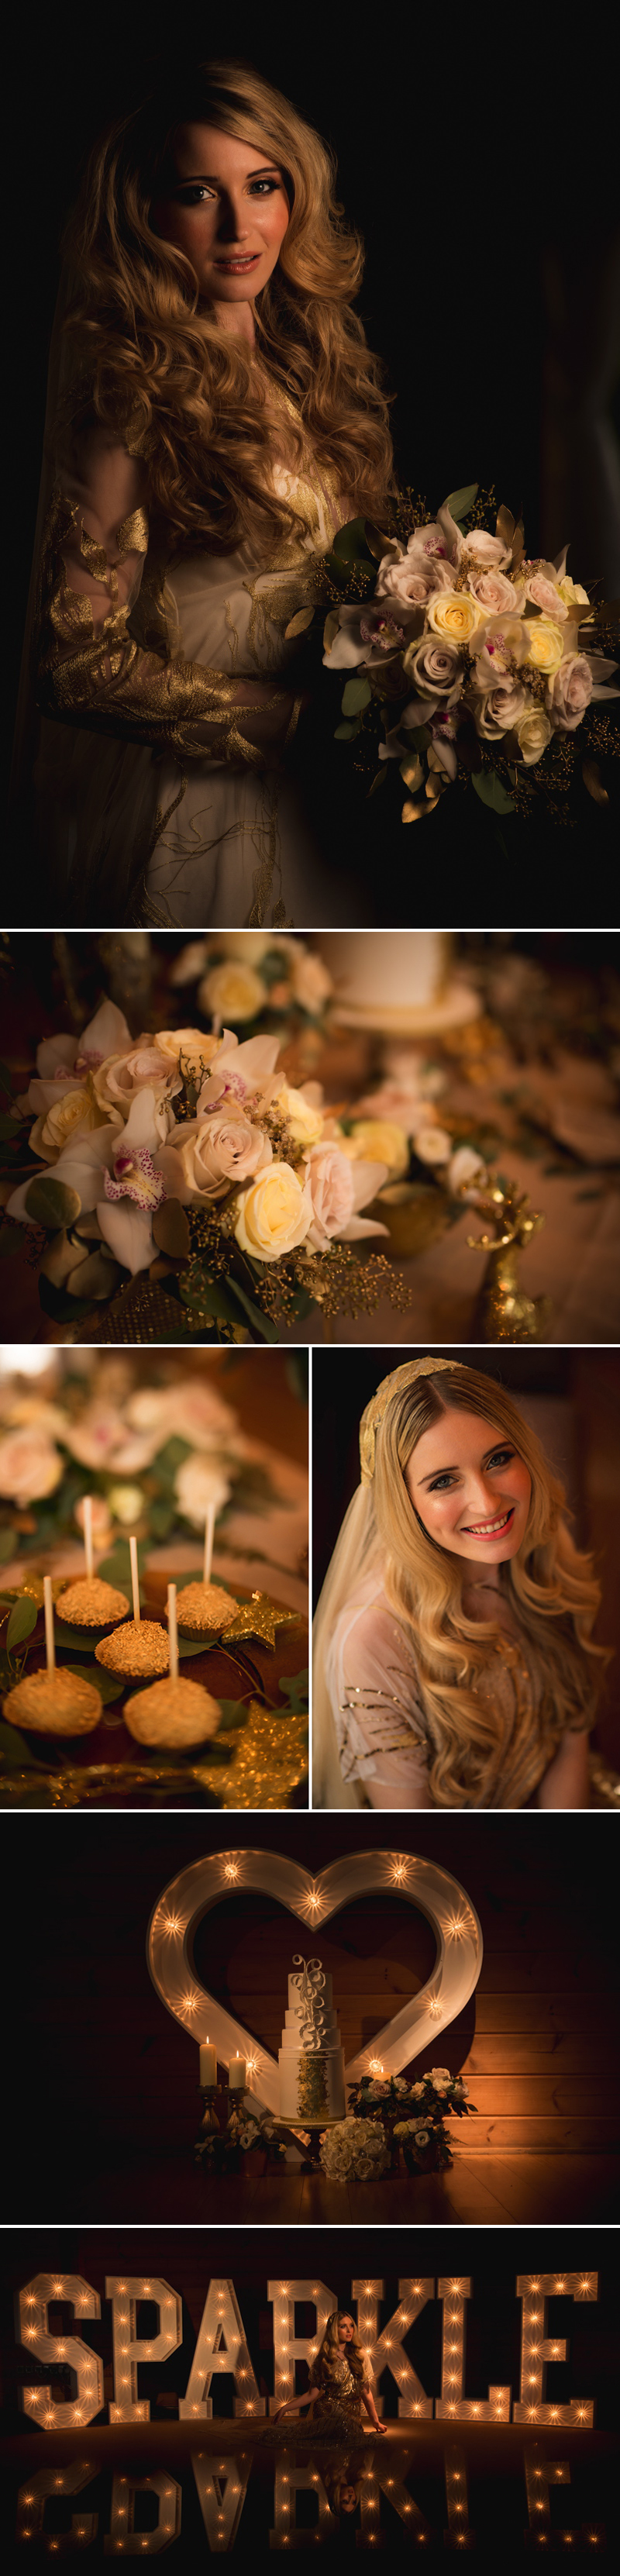 gold-sparkle-winter-wedding-inspiration-jan-clarke-neil-redfern-photography-styal-lodge-coco-wedding-venues-002